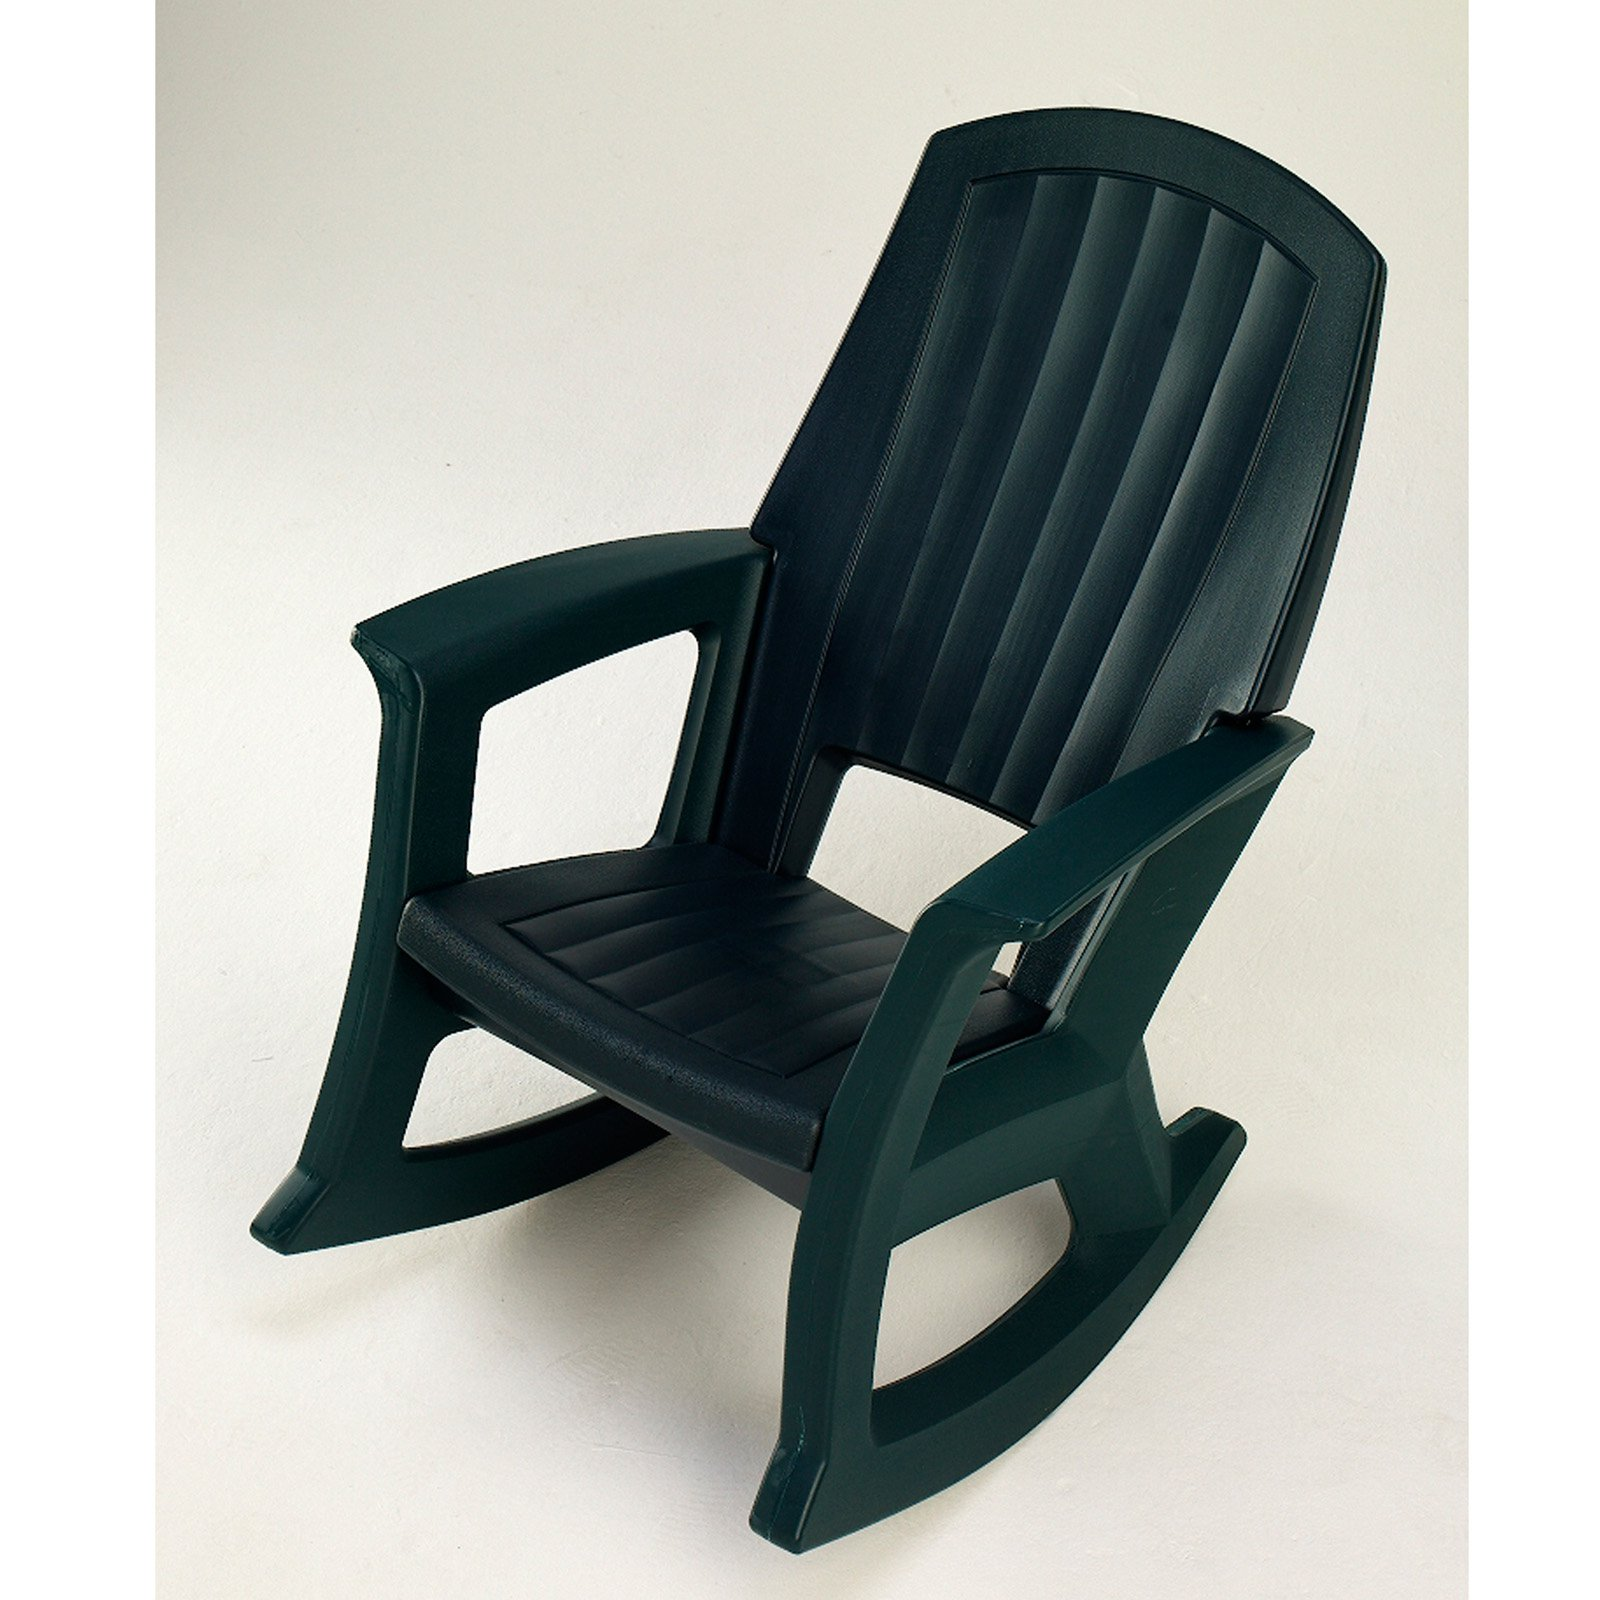 Plastic Rocking Chair Walmart Outdoor Rocking Chairs Portable Rocking Chair